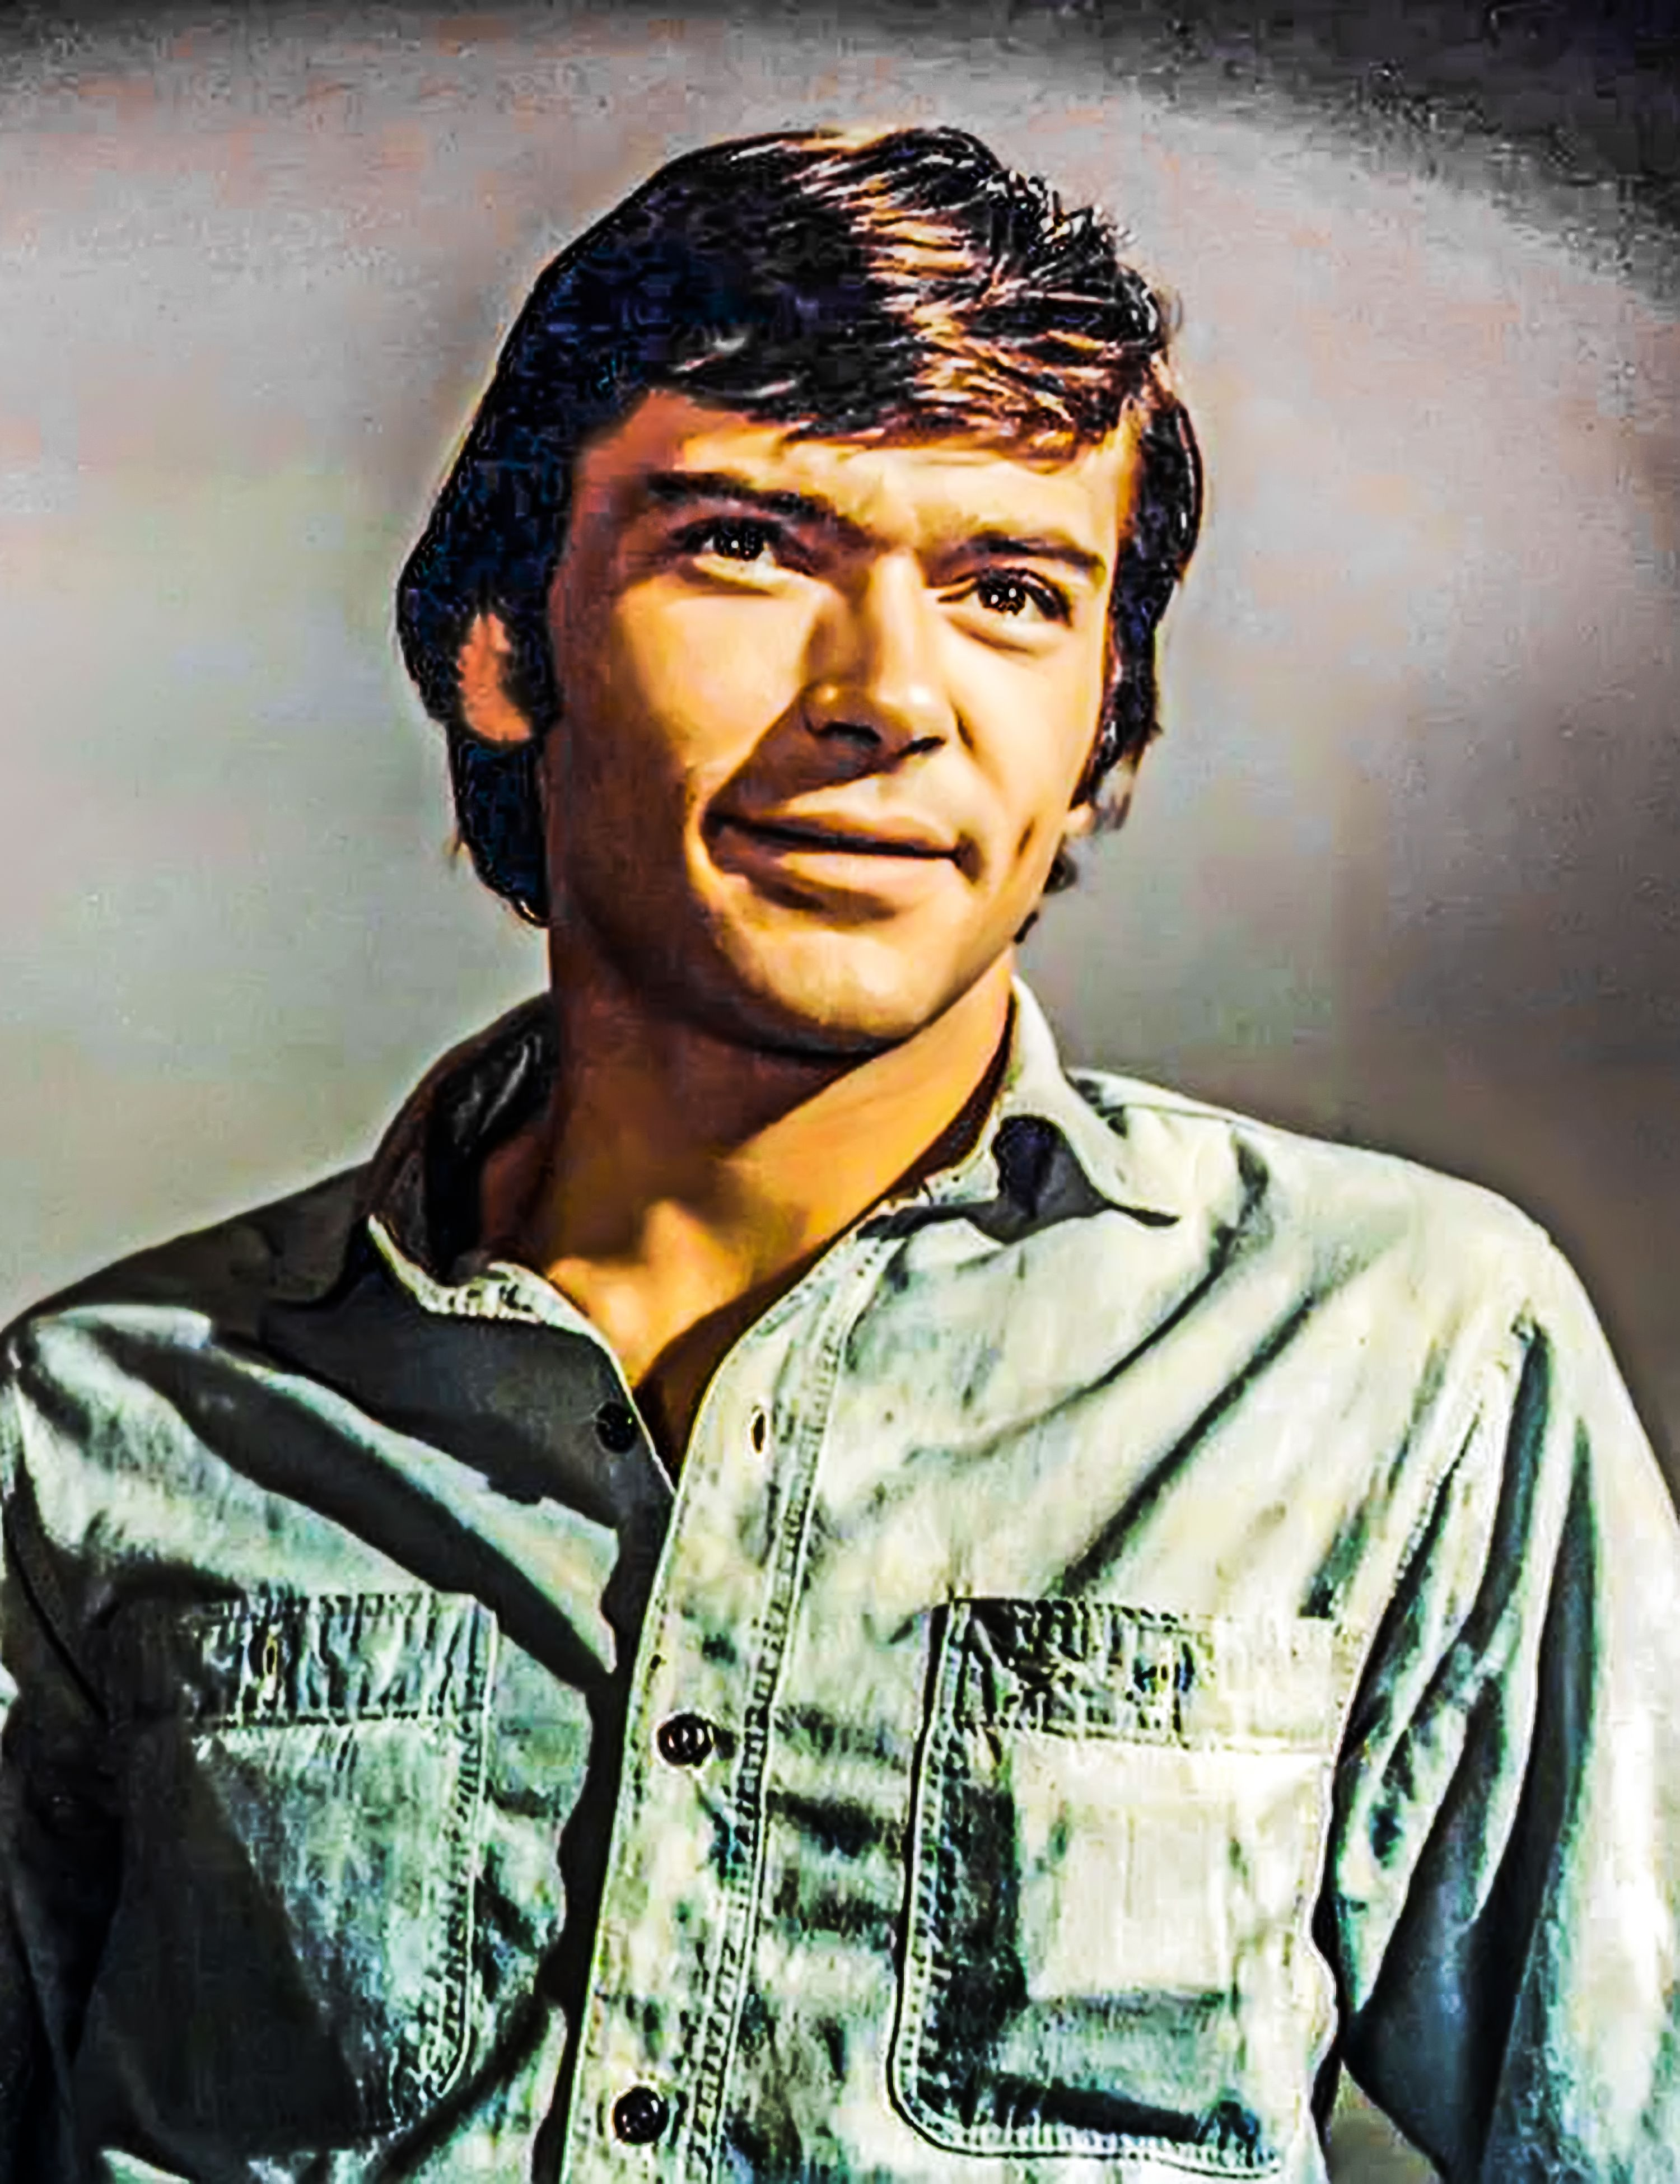 pete duel fan club